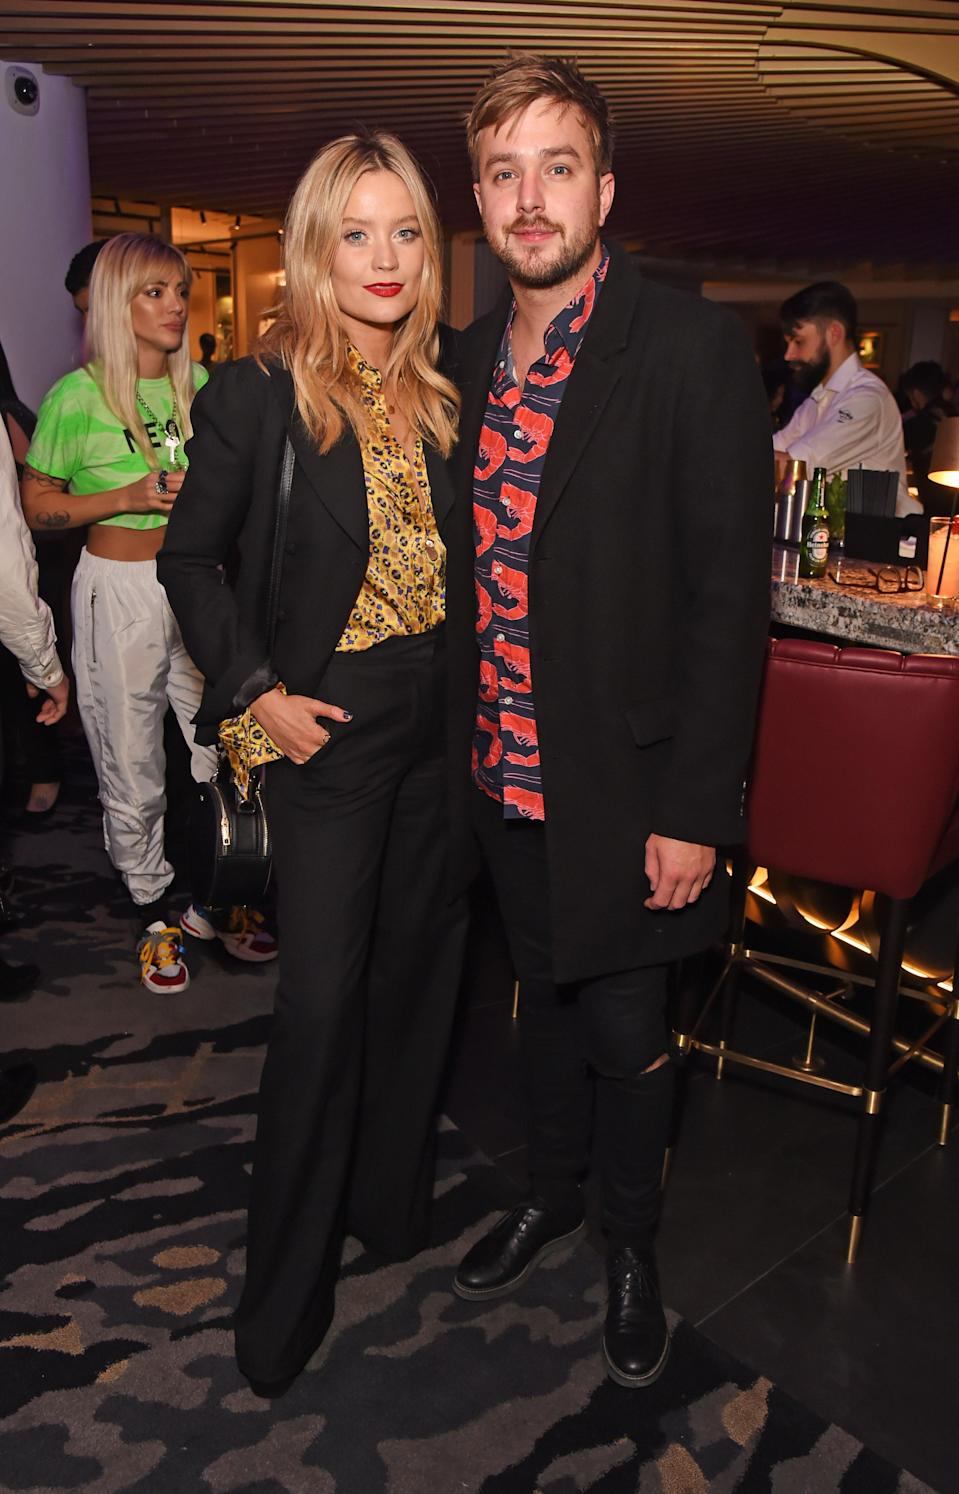 Iain pictured with his wife Laura Whitmore who also hosts the show (Dave Benett/Getty Images for Har)